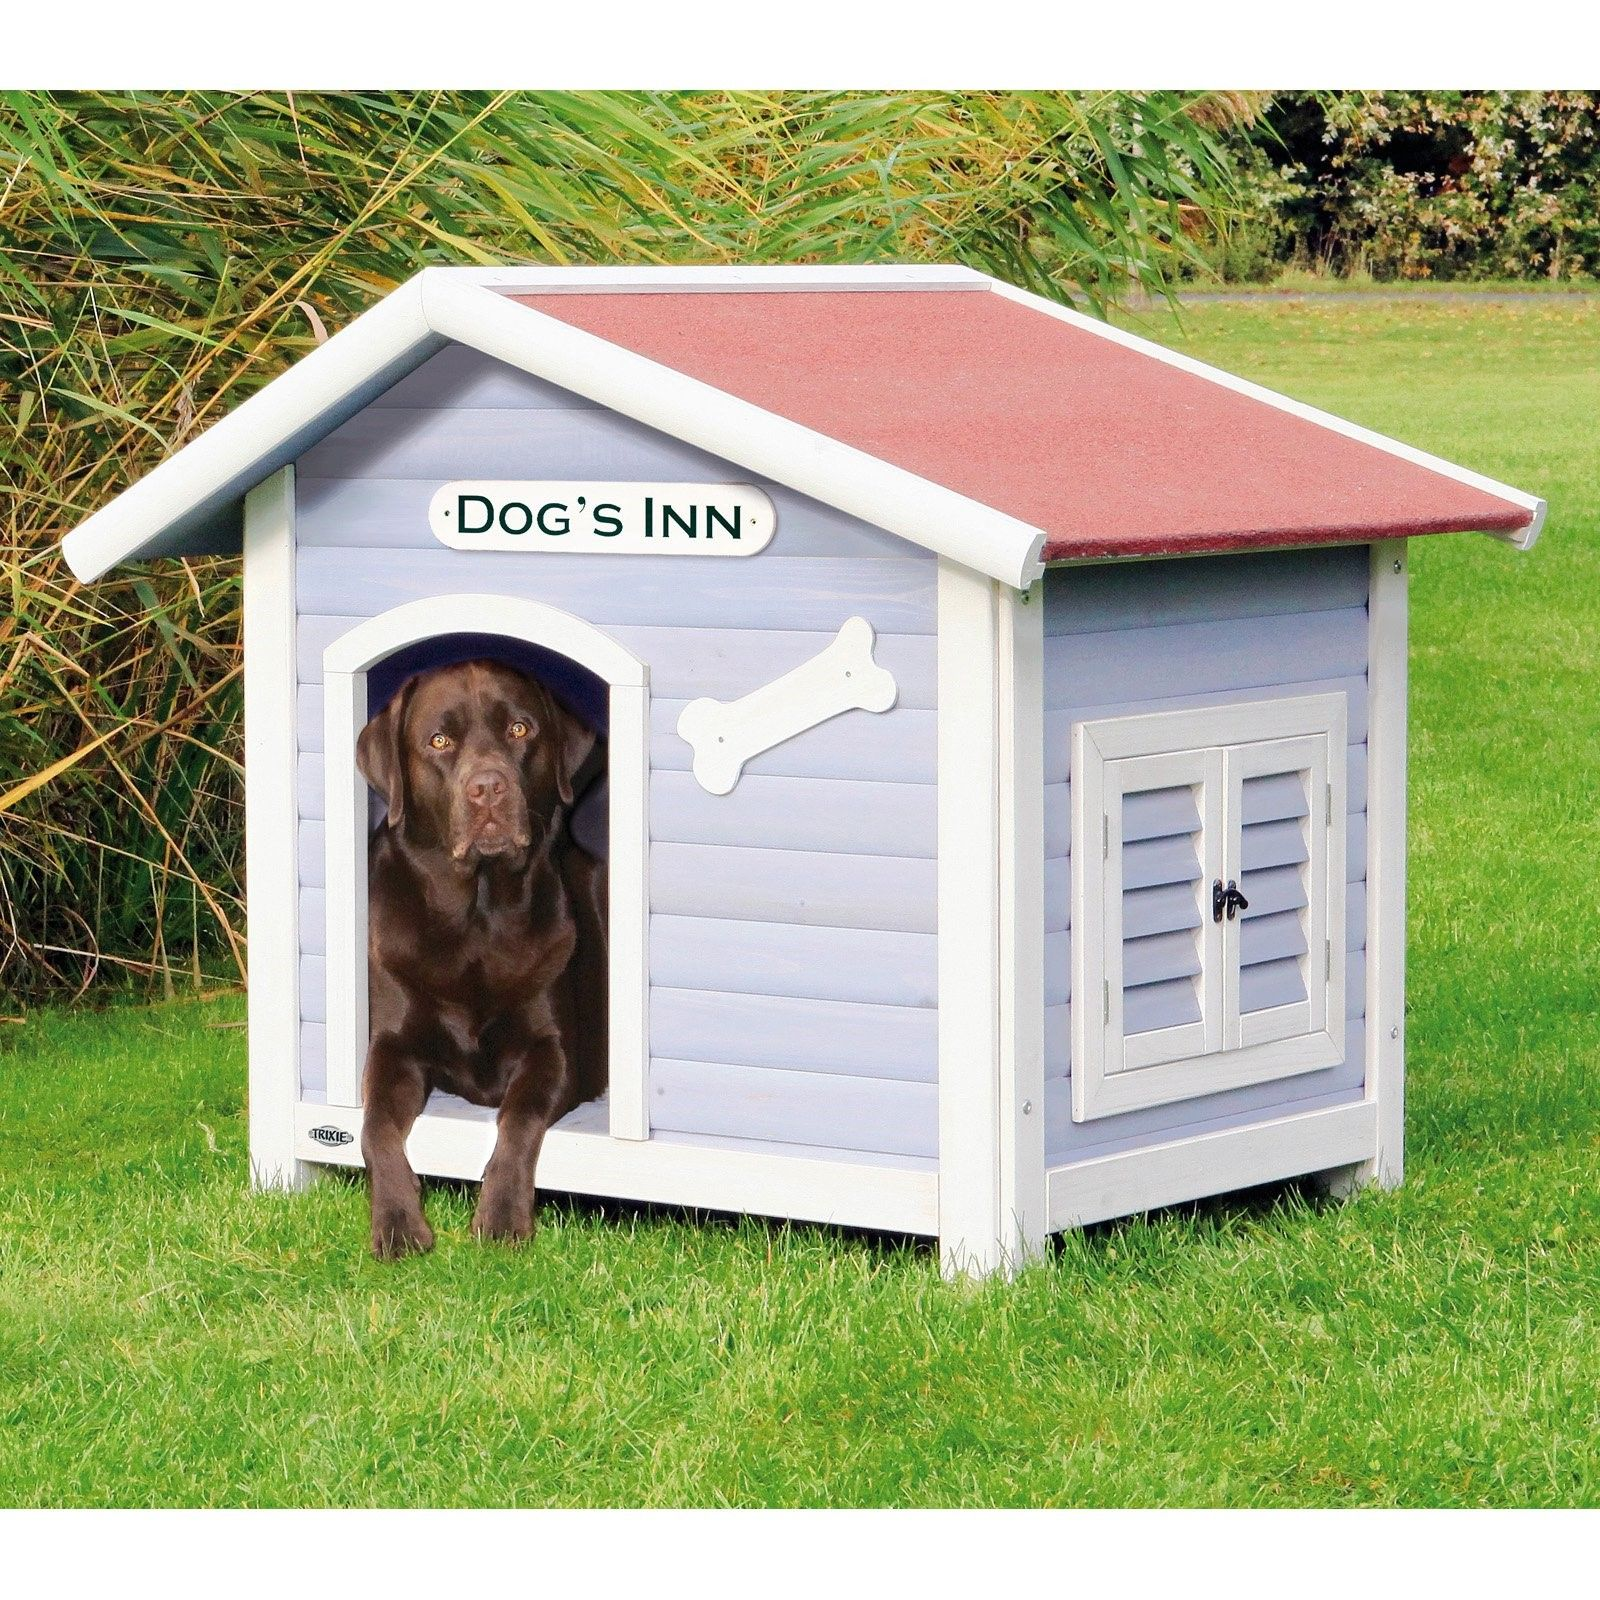 15 Best Fancy Dog Houses Cool Luxury Dog Houses To Buy